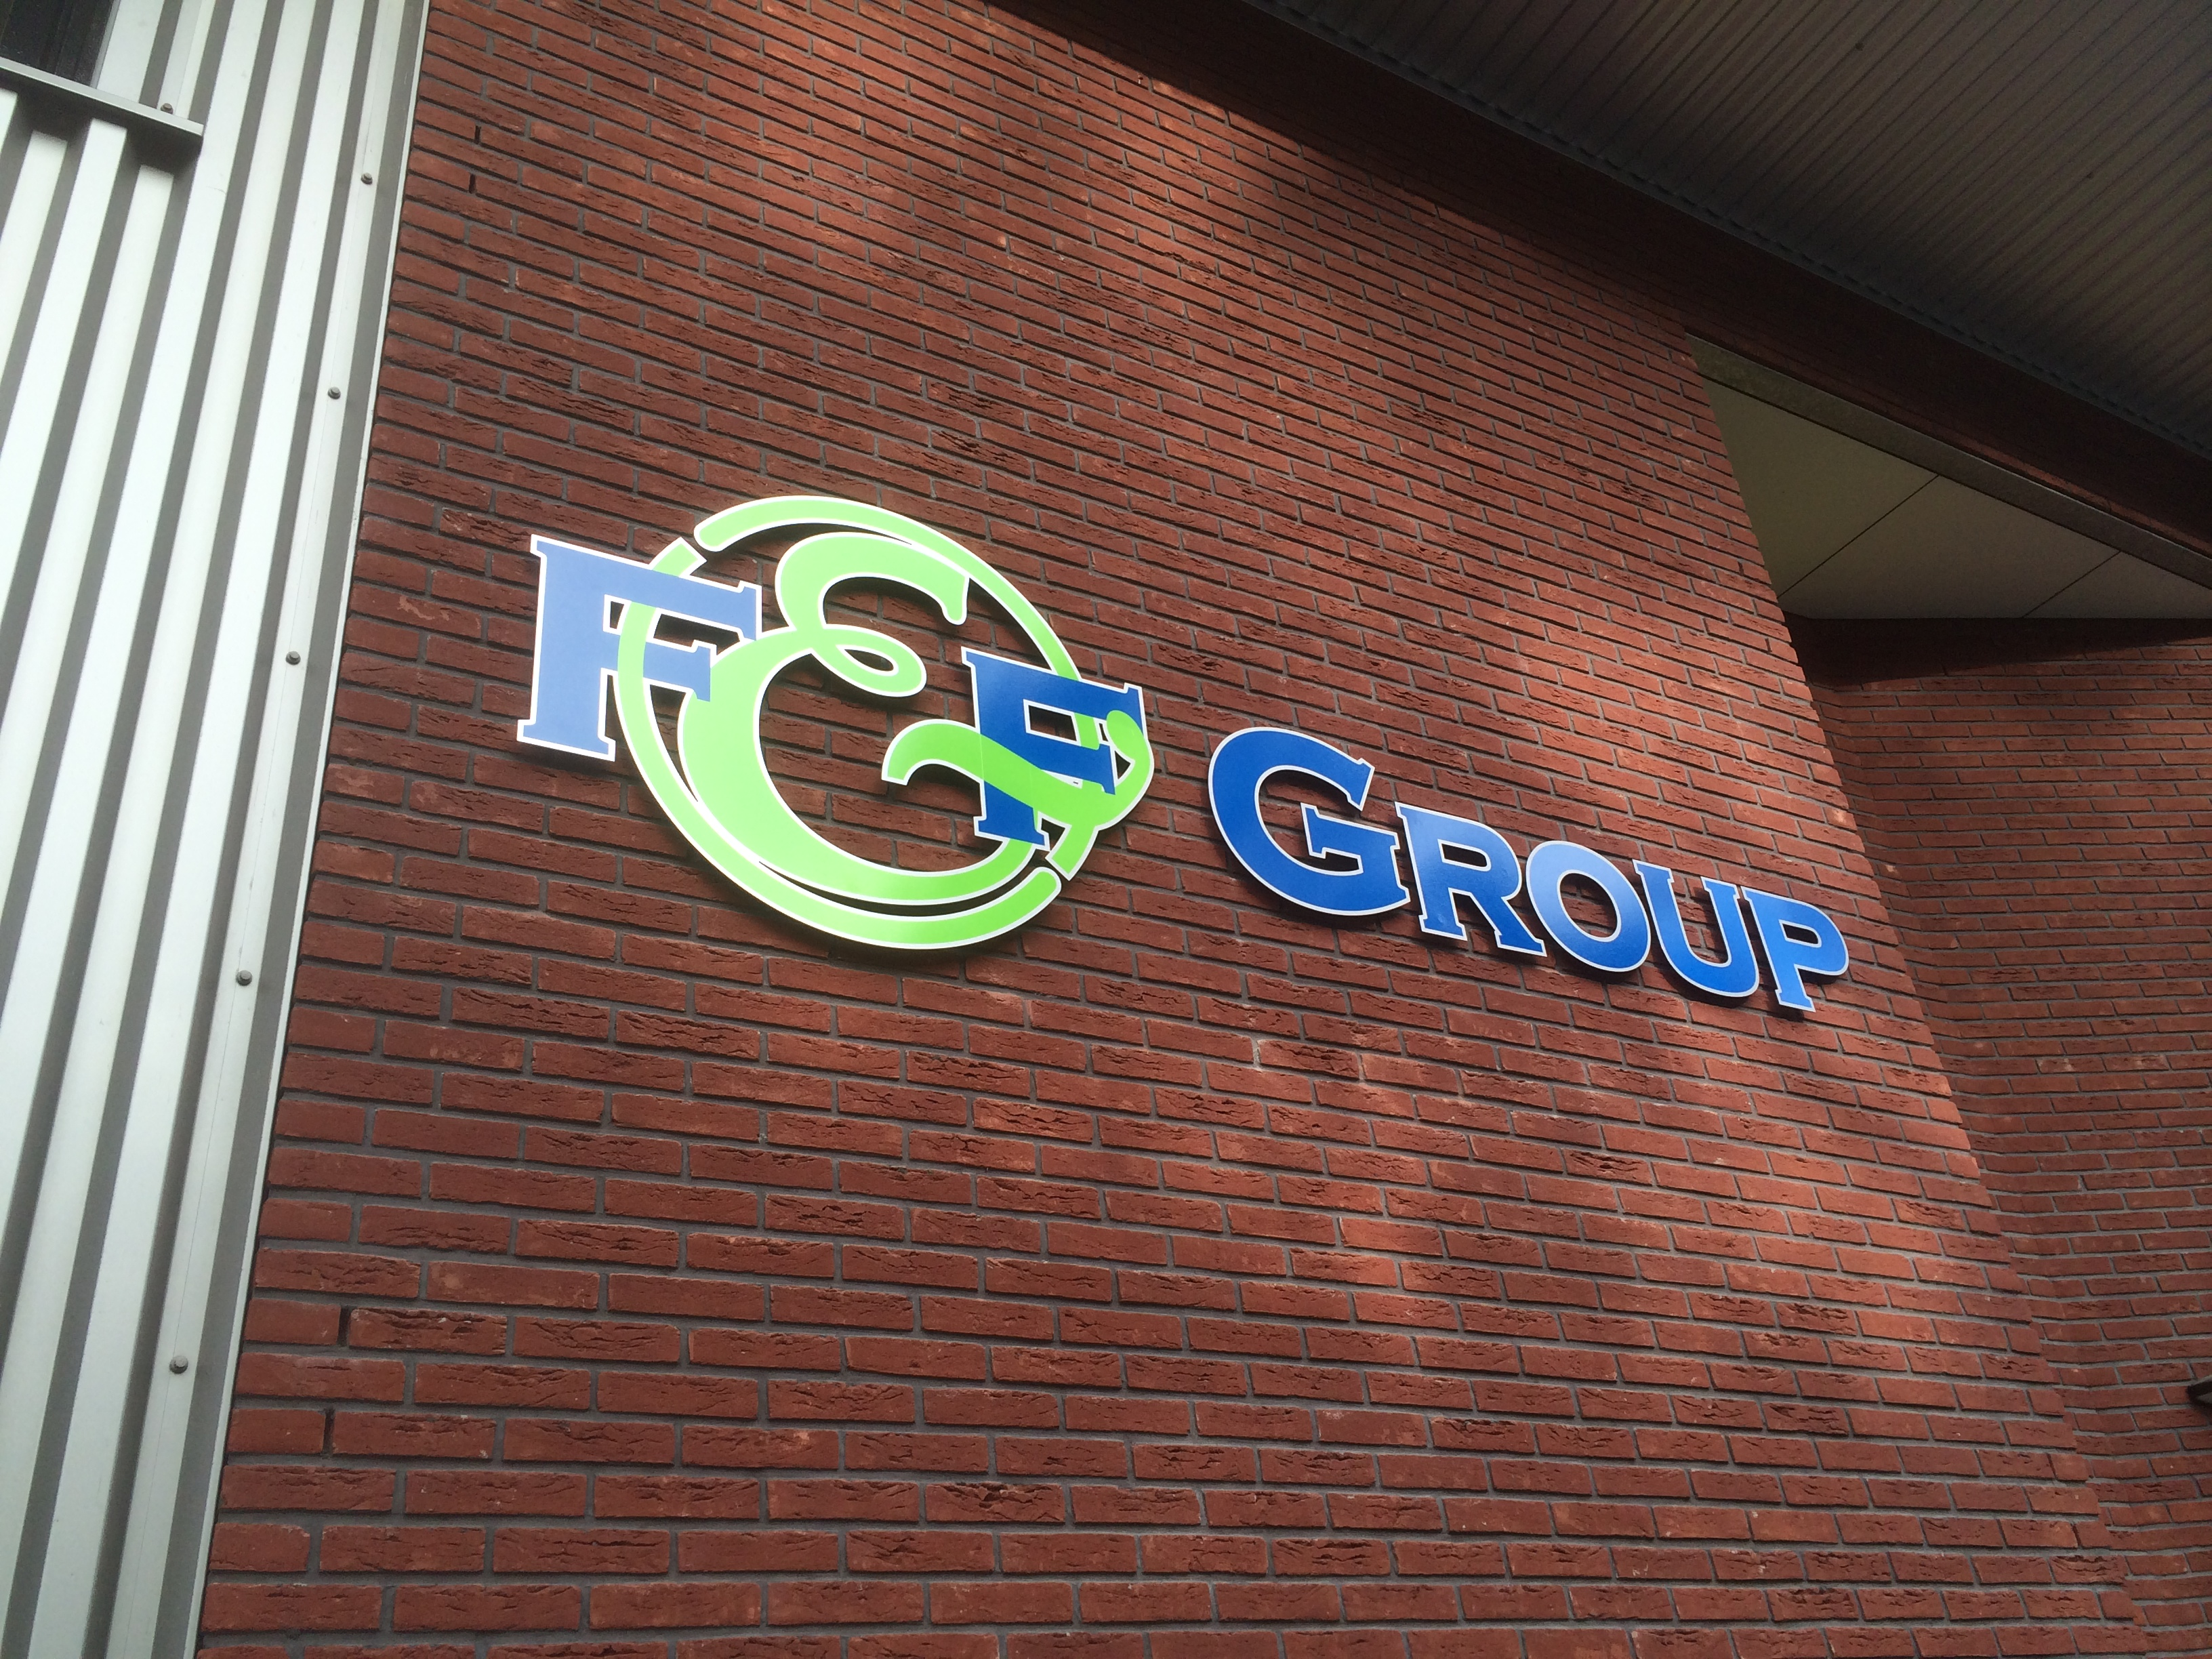 Gevelletters F&F Group